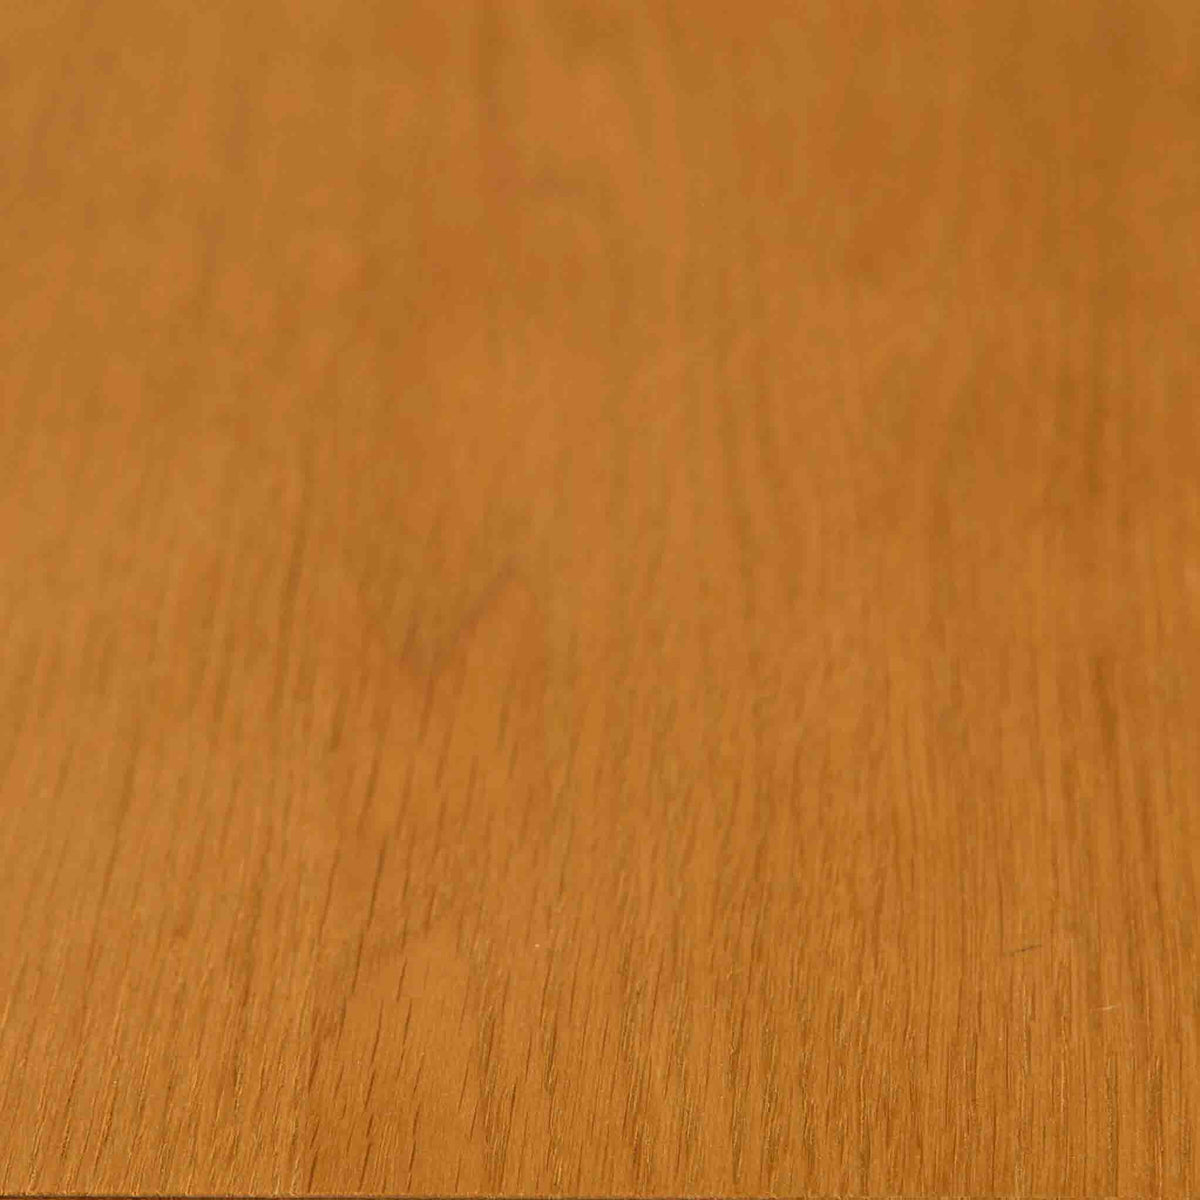 Close up of oak wood grain on The Padstow Cream Wooden Tallboy Chest of Drawers